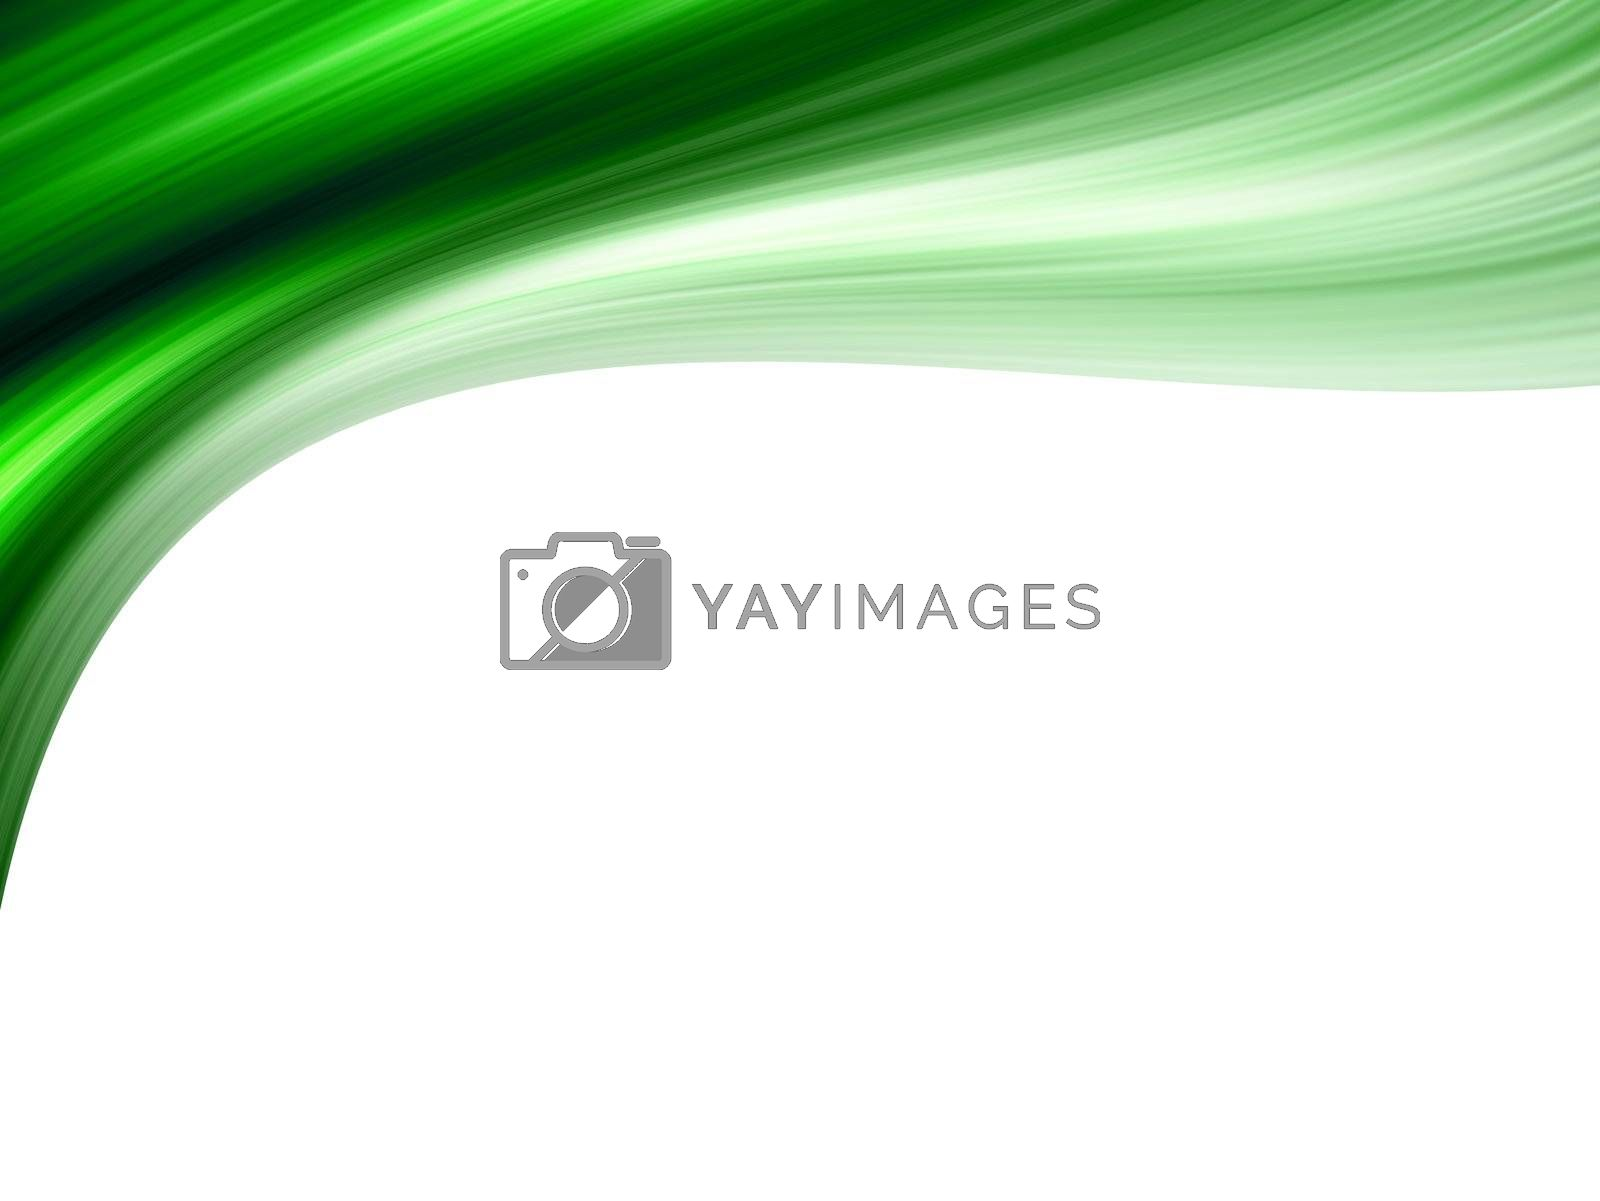 green dynamic wave on top of the image